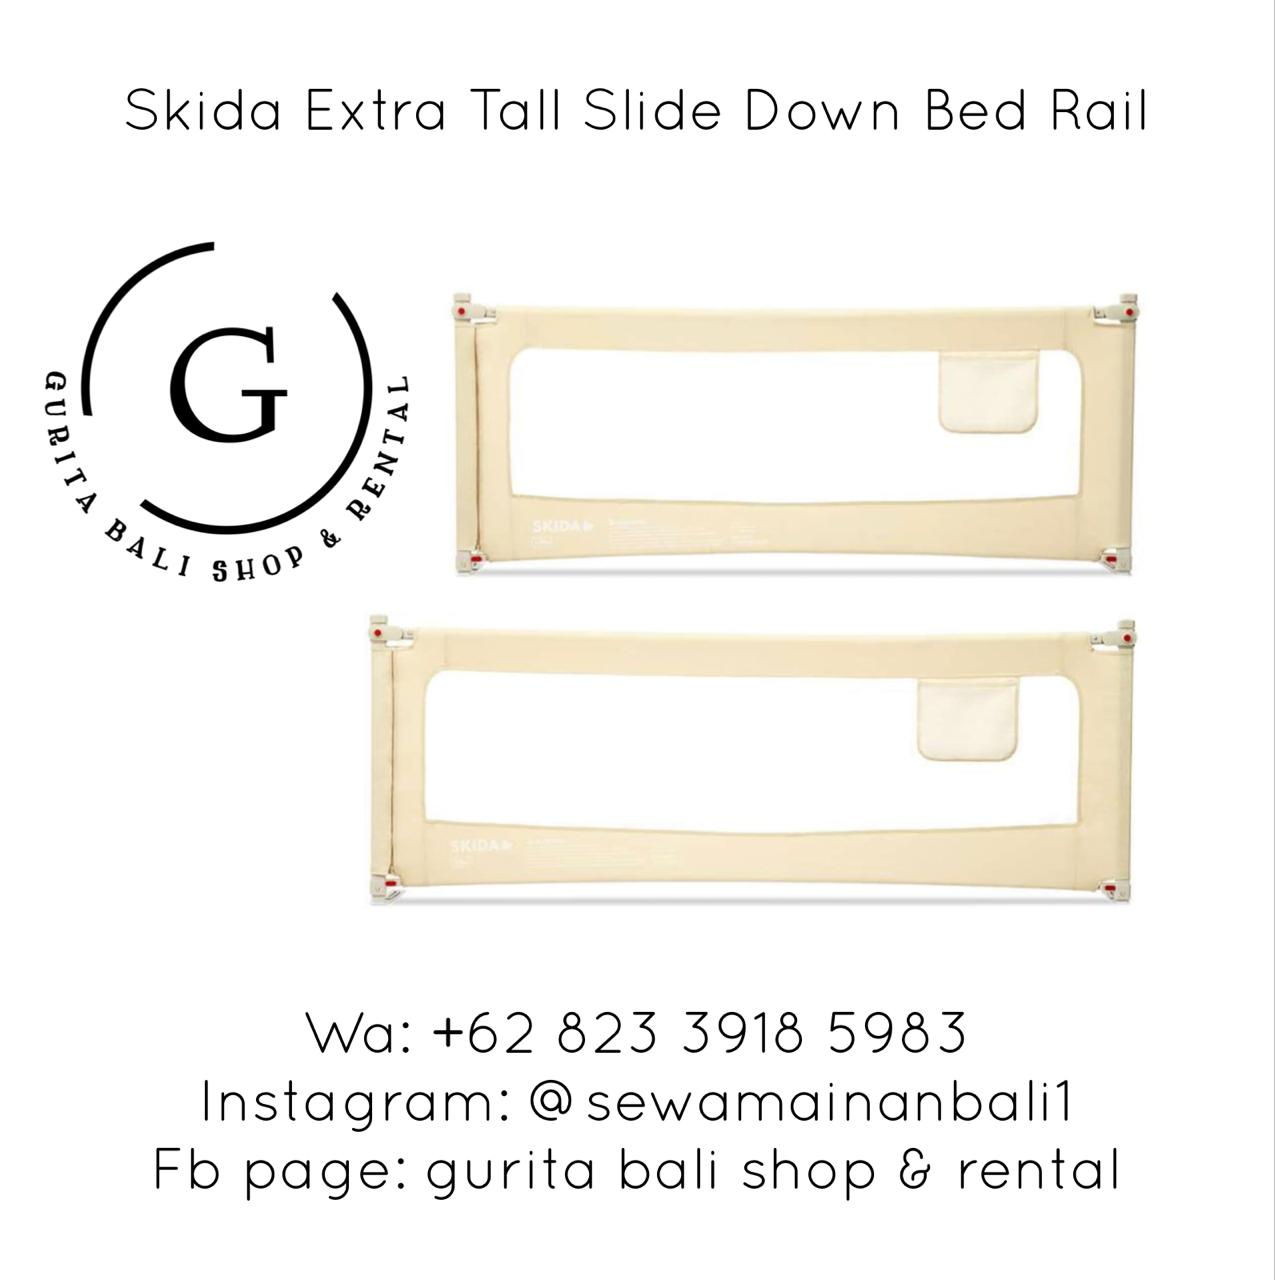 SKIDA EXTRA TALL SLIDE DOWN BEDRAIL SIZE 200 CM (A